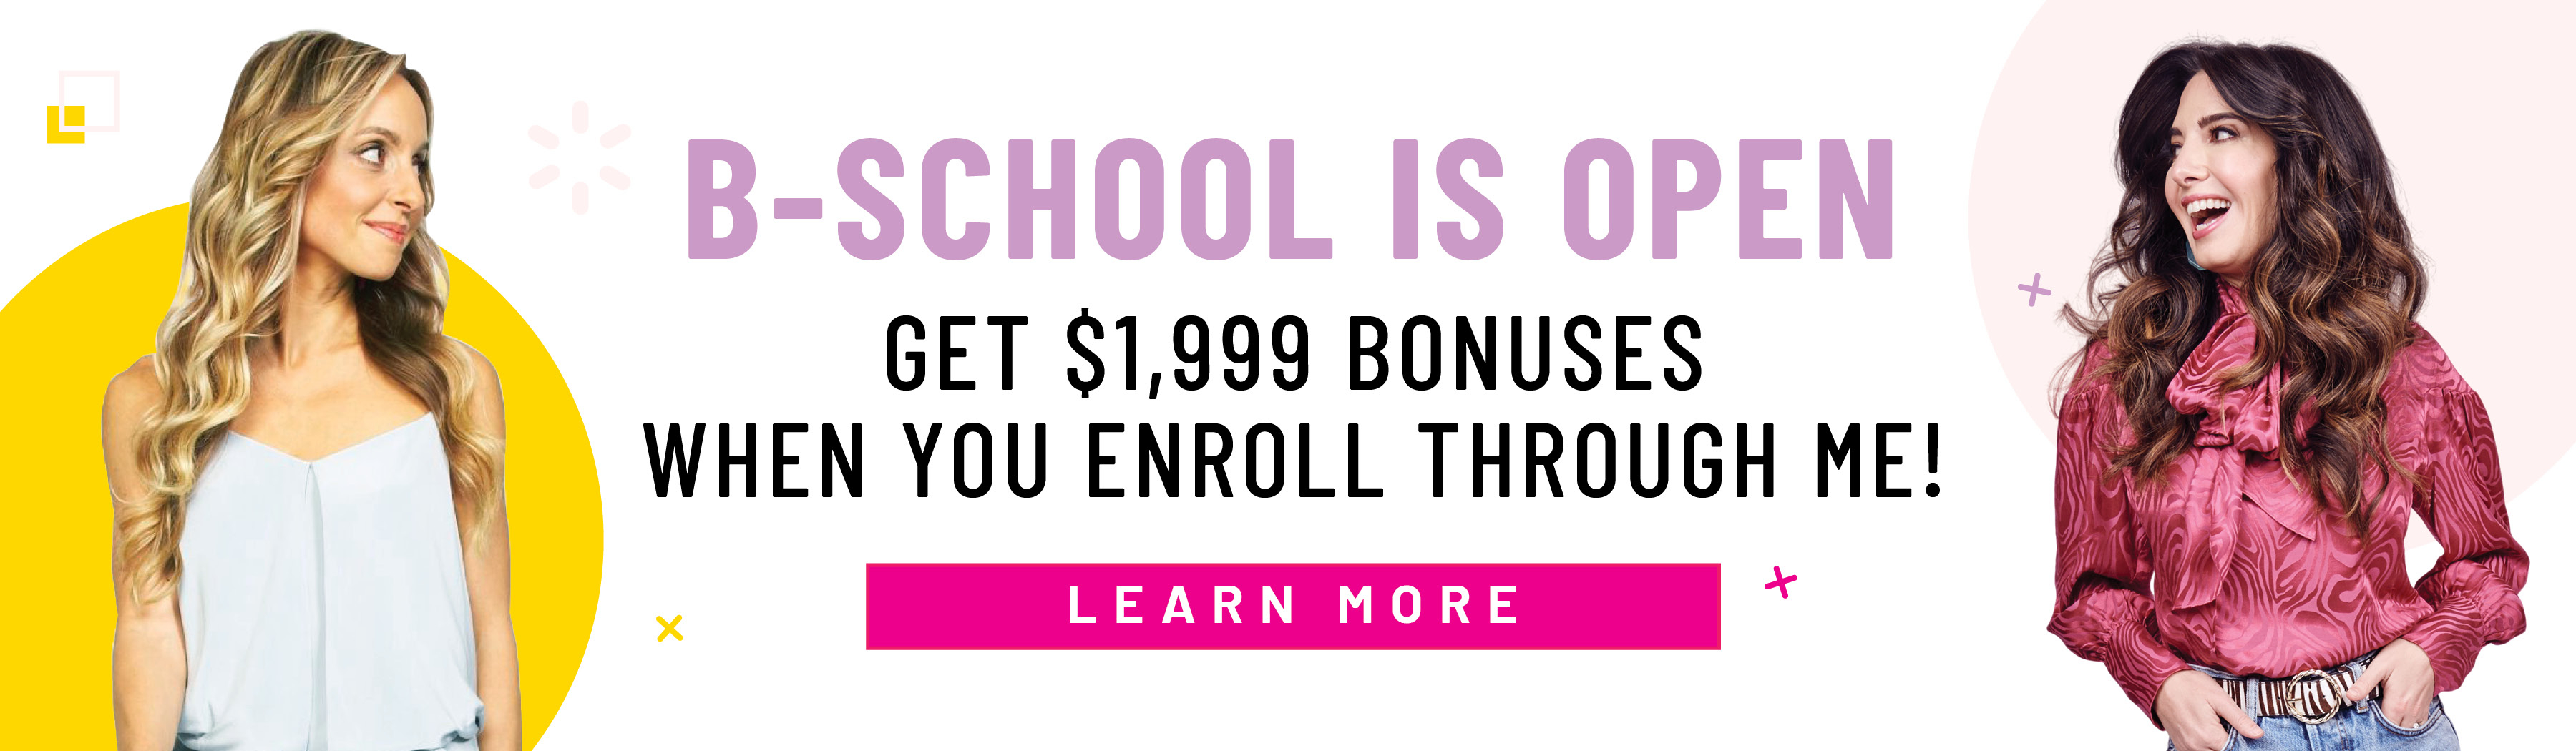 Marie Forleo B-School now open - register through Gabby Bernstein to get bonuses